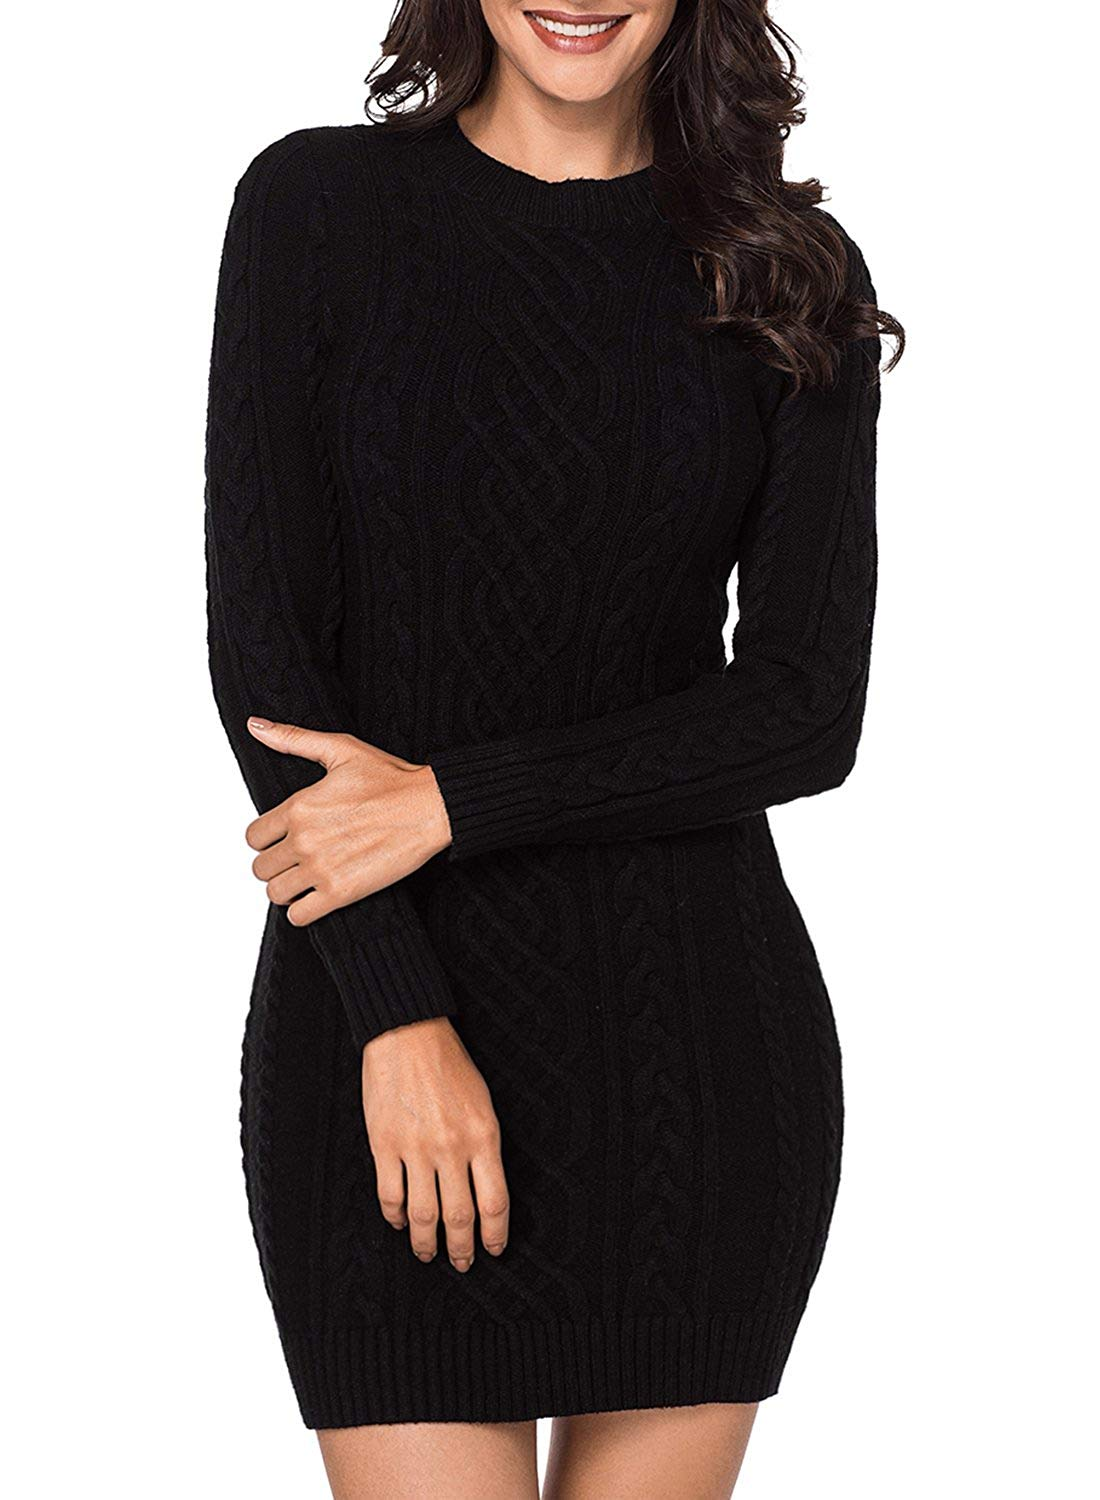 04475e7131f Get Quotations · LOSRLY Women Crew Neck Long Sleeve Cable Knit Bodycon  Sweater Midi Dress